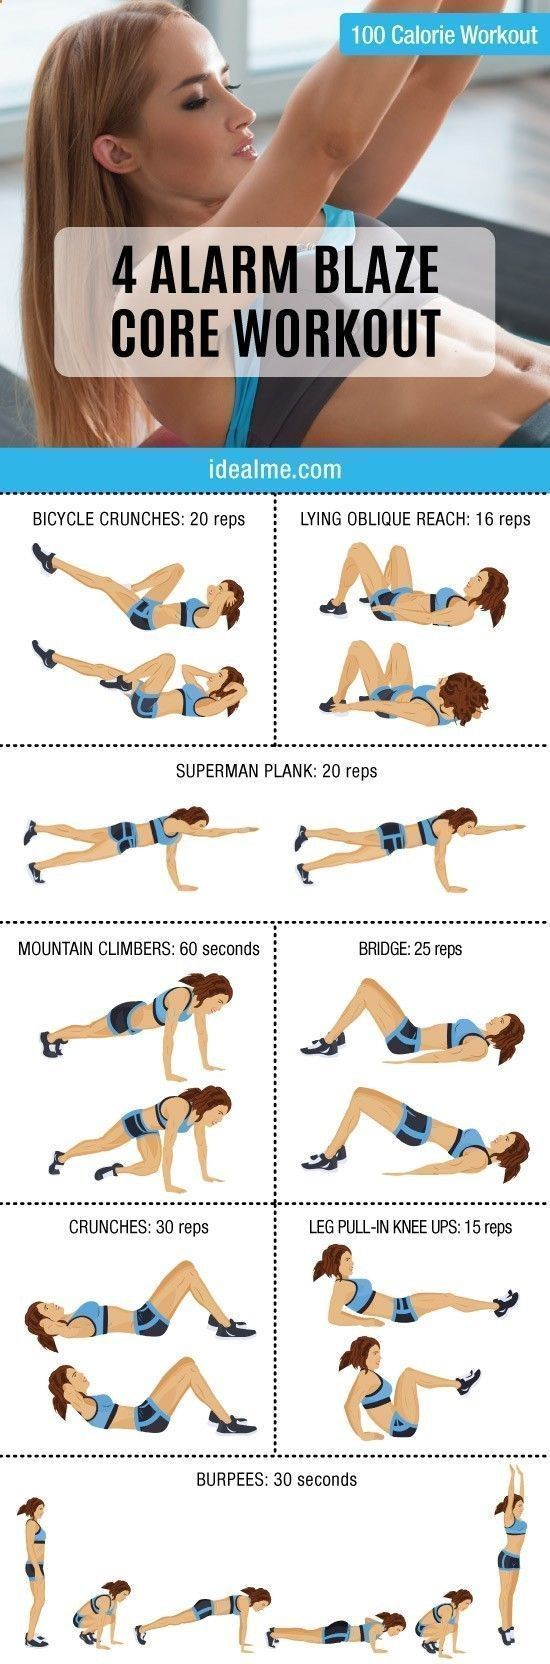 If you're a fan of challenging yourself AND you want a core that gets attention, this 4 Alarm Blaze Core workout combines the best core building exercises. #coreworkouts